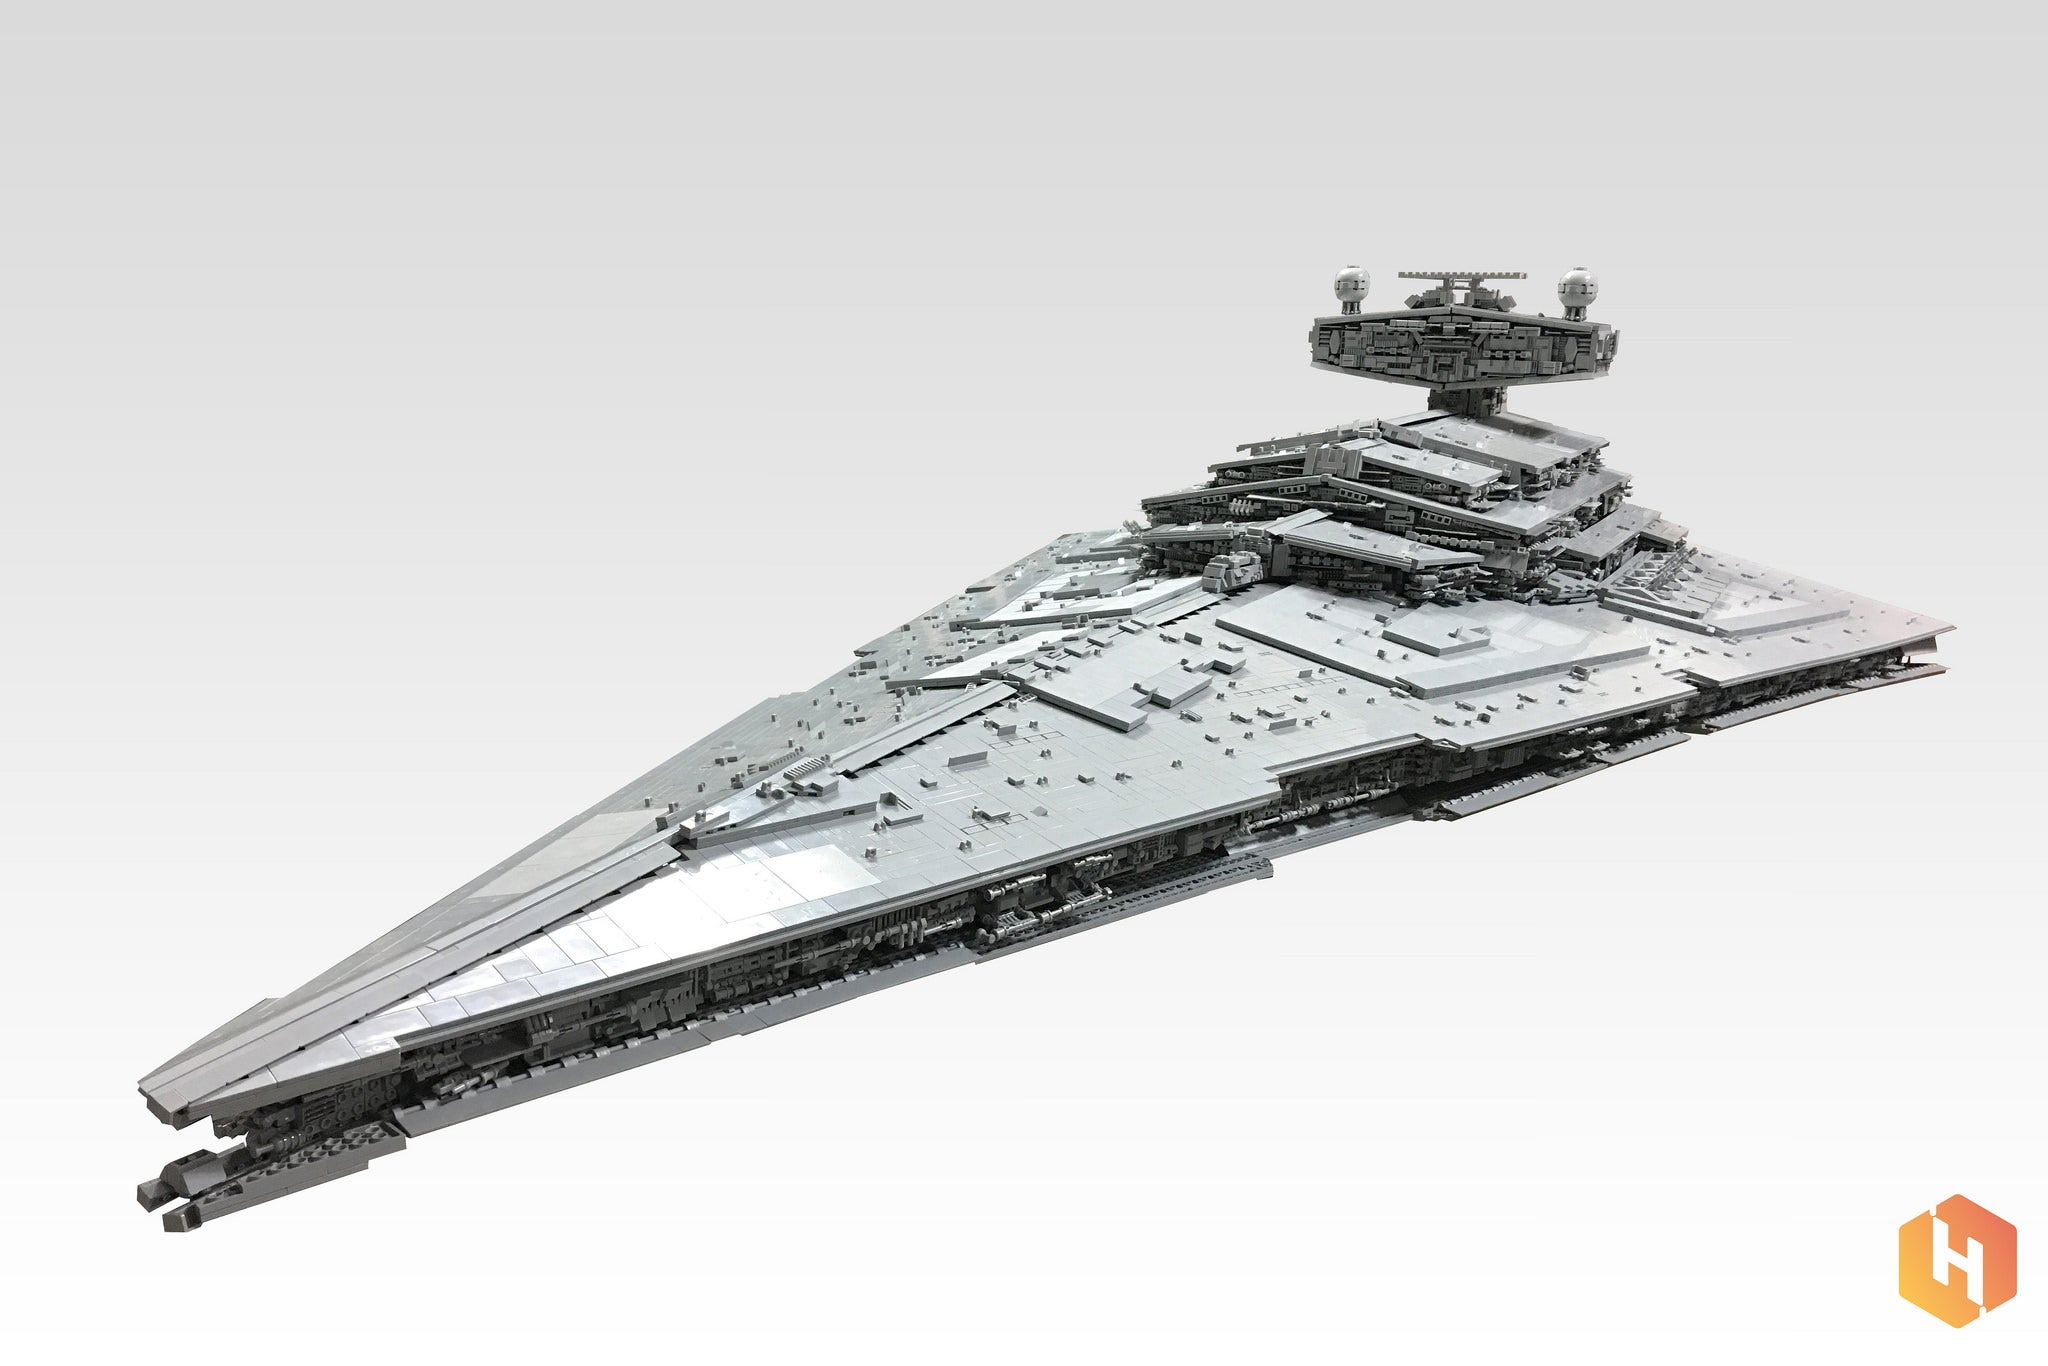 lego star destroyer - photo #46